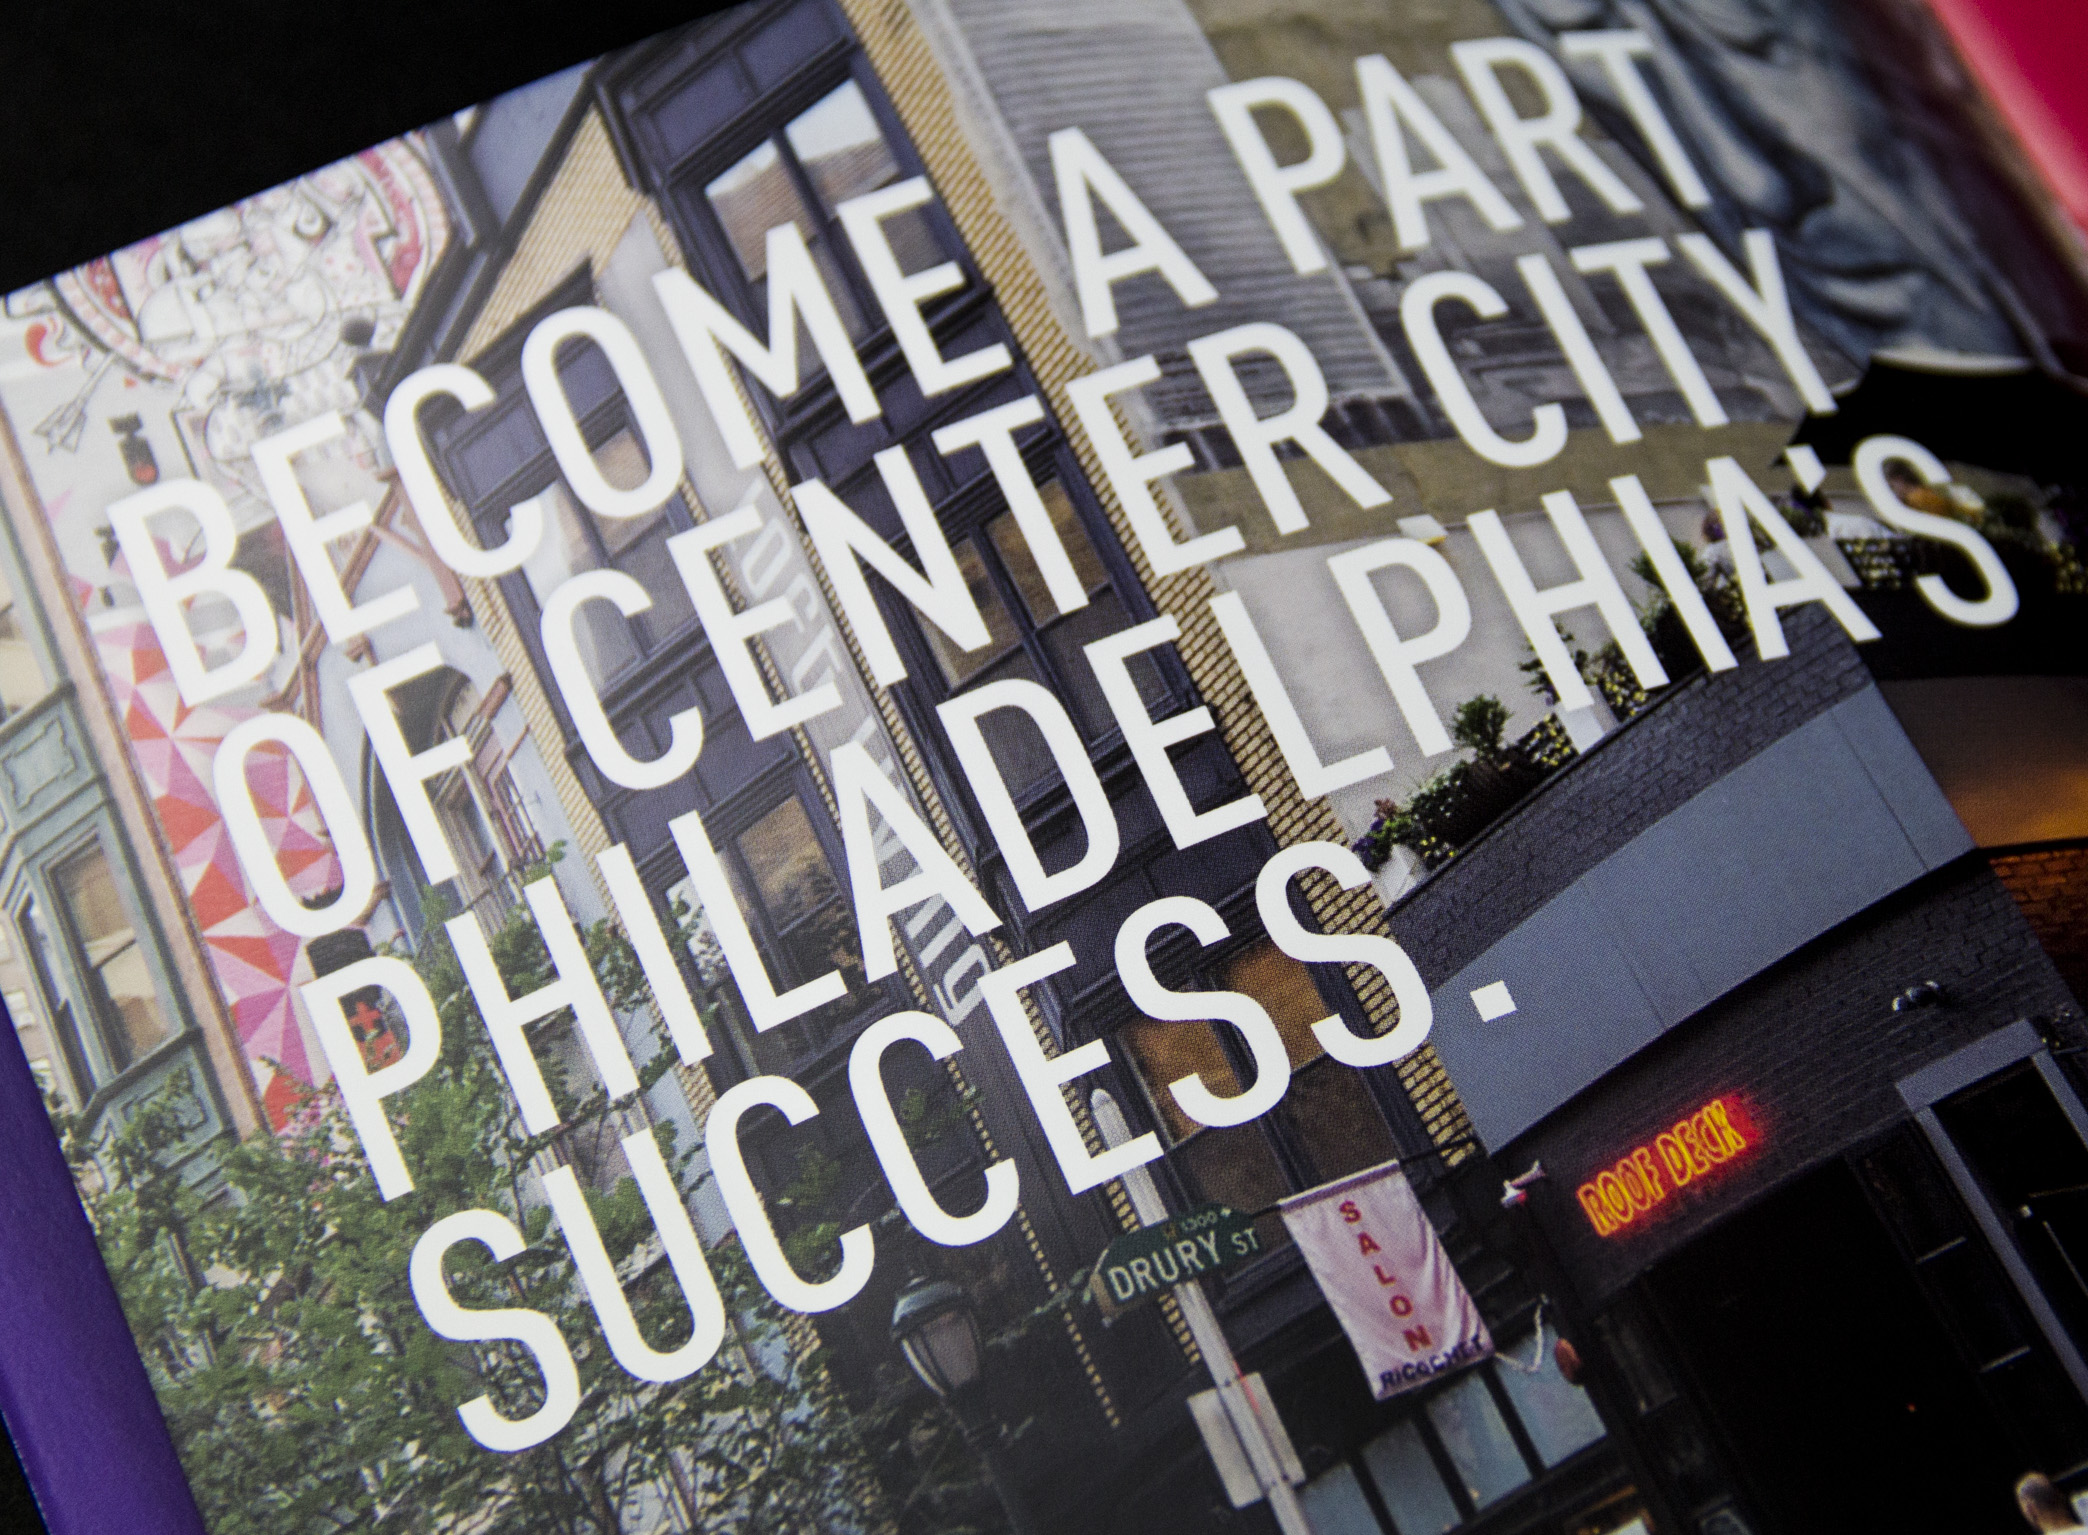 Center City District booklet quote